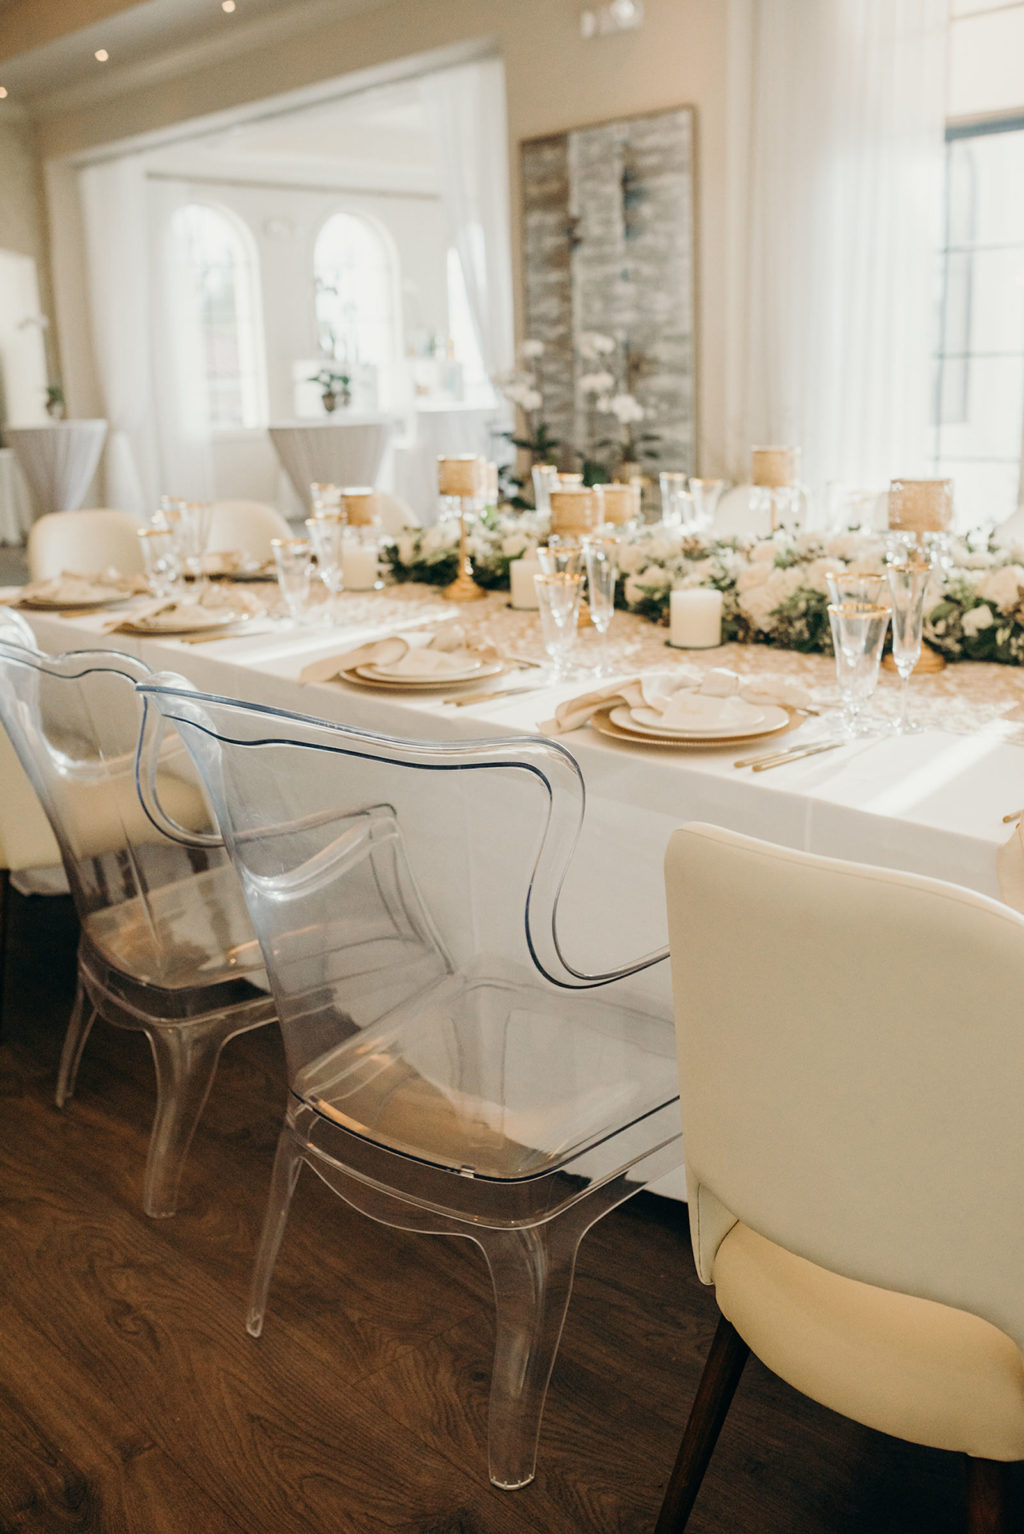 Timeless Elegant Wedding Reception Decor, Long Feasting Table, Acrylic Chairs, White Roses and Greenery Garland, Candlesticks, Gold Chargers | Tampa Bay Wedding Venue Westshore Yacht Club